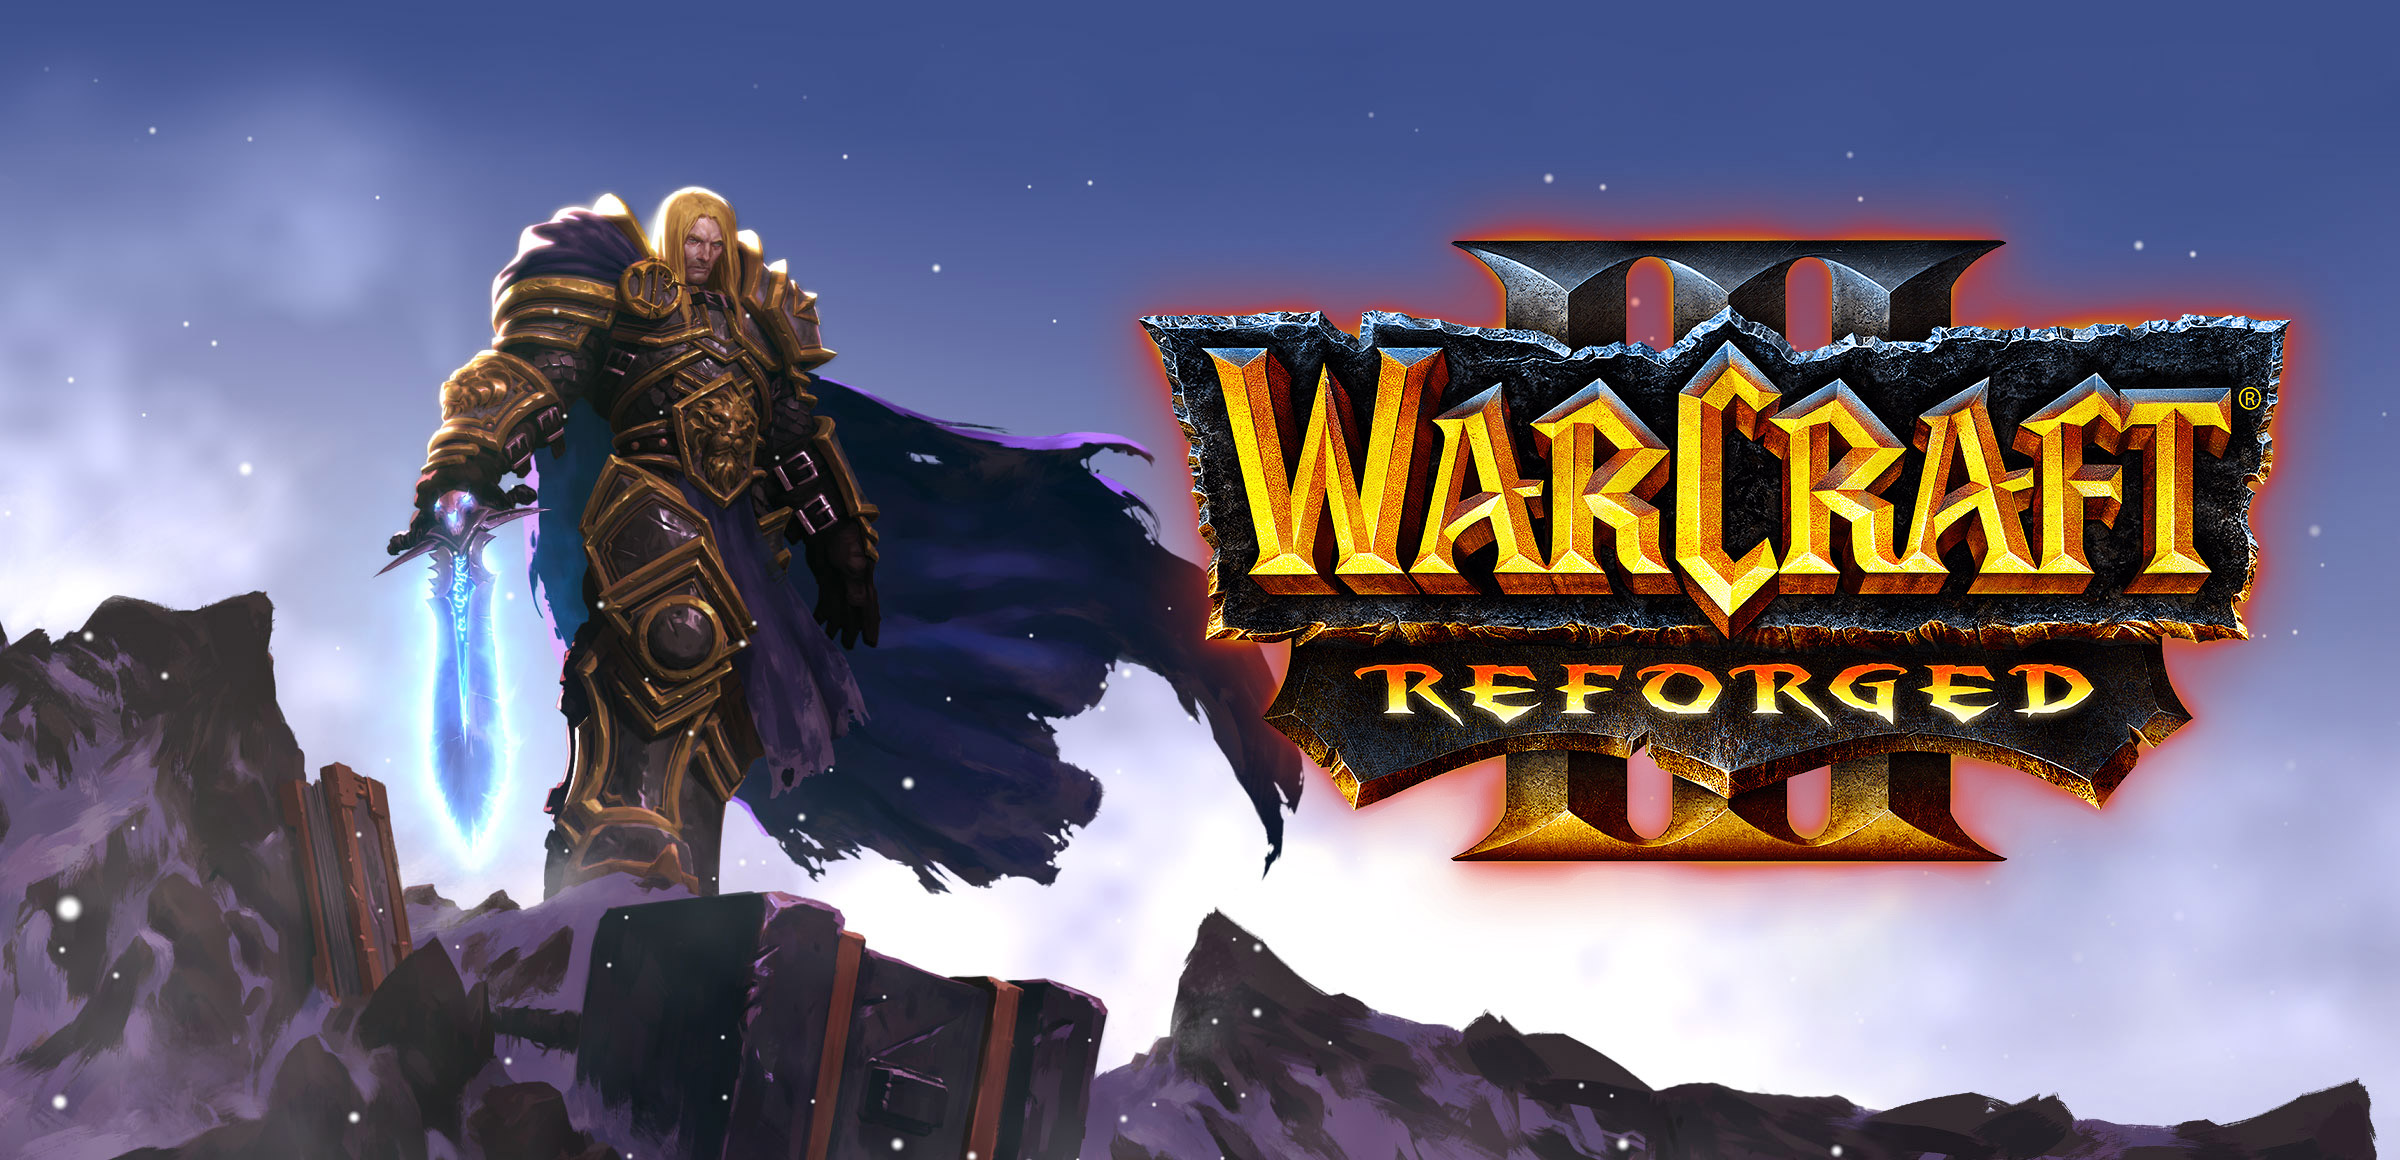 <h1>Blizzard wants more gold</h1><h2>Warcraft 3: Reforged became the biggest failure in the history of the studio</h2>